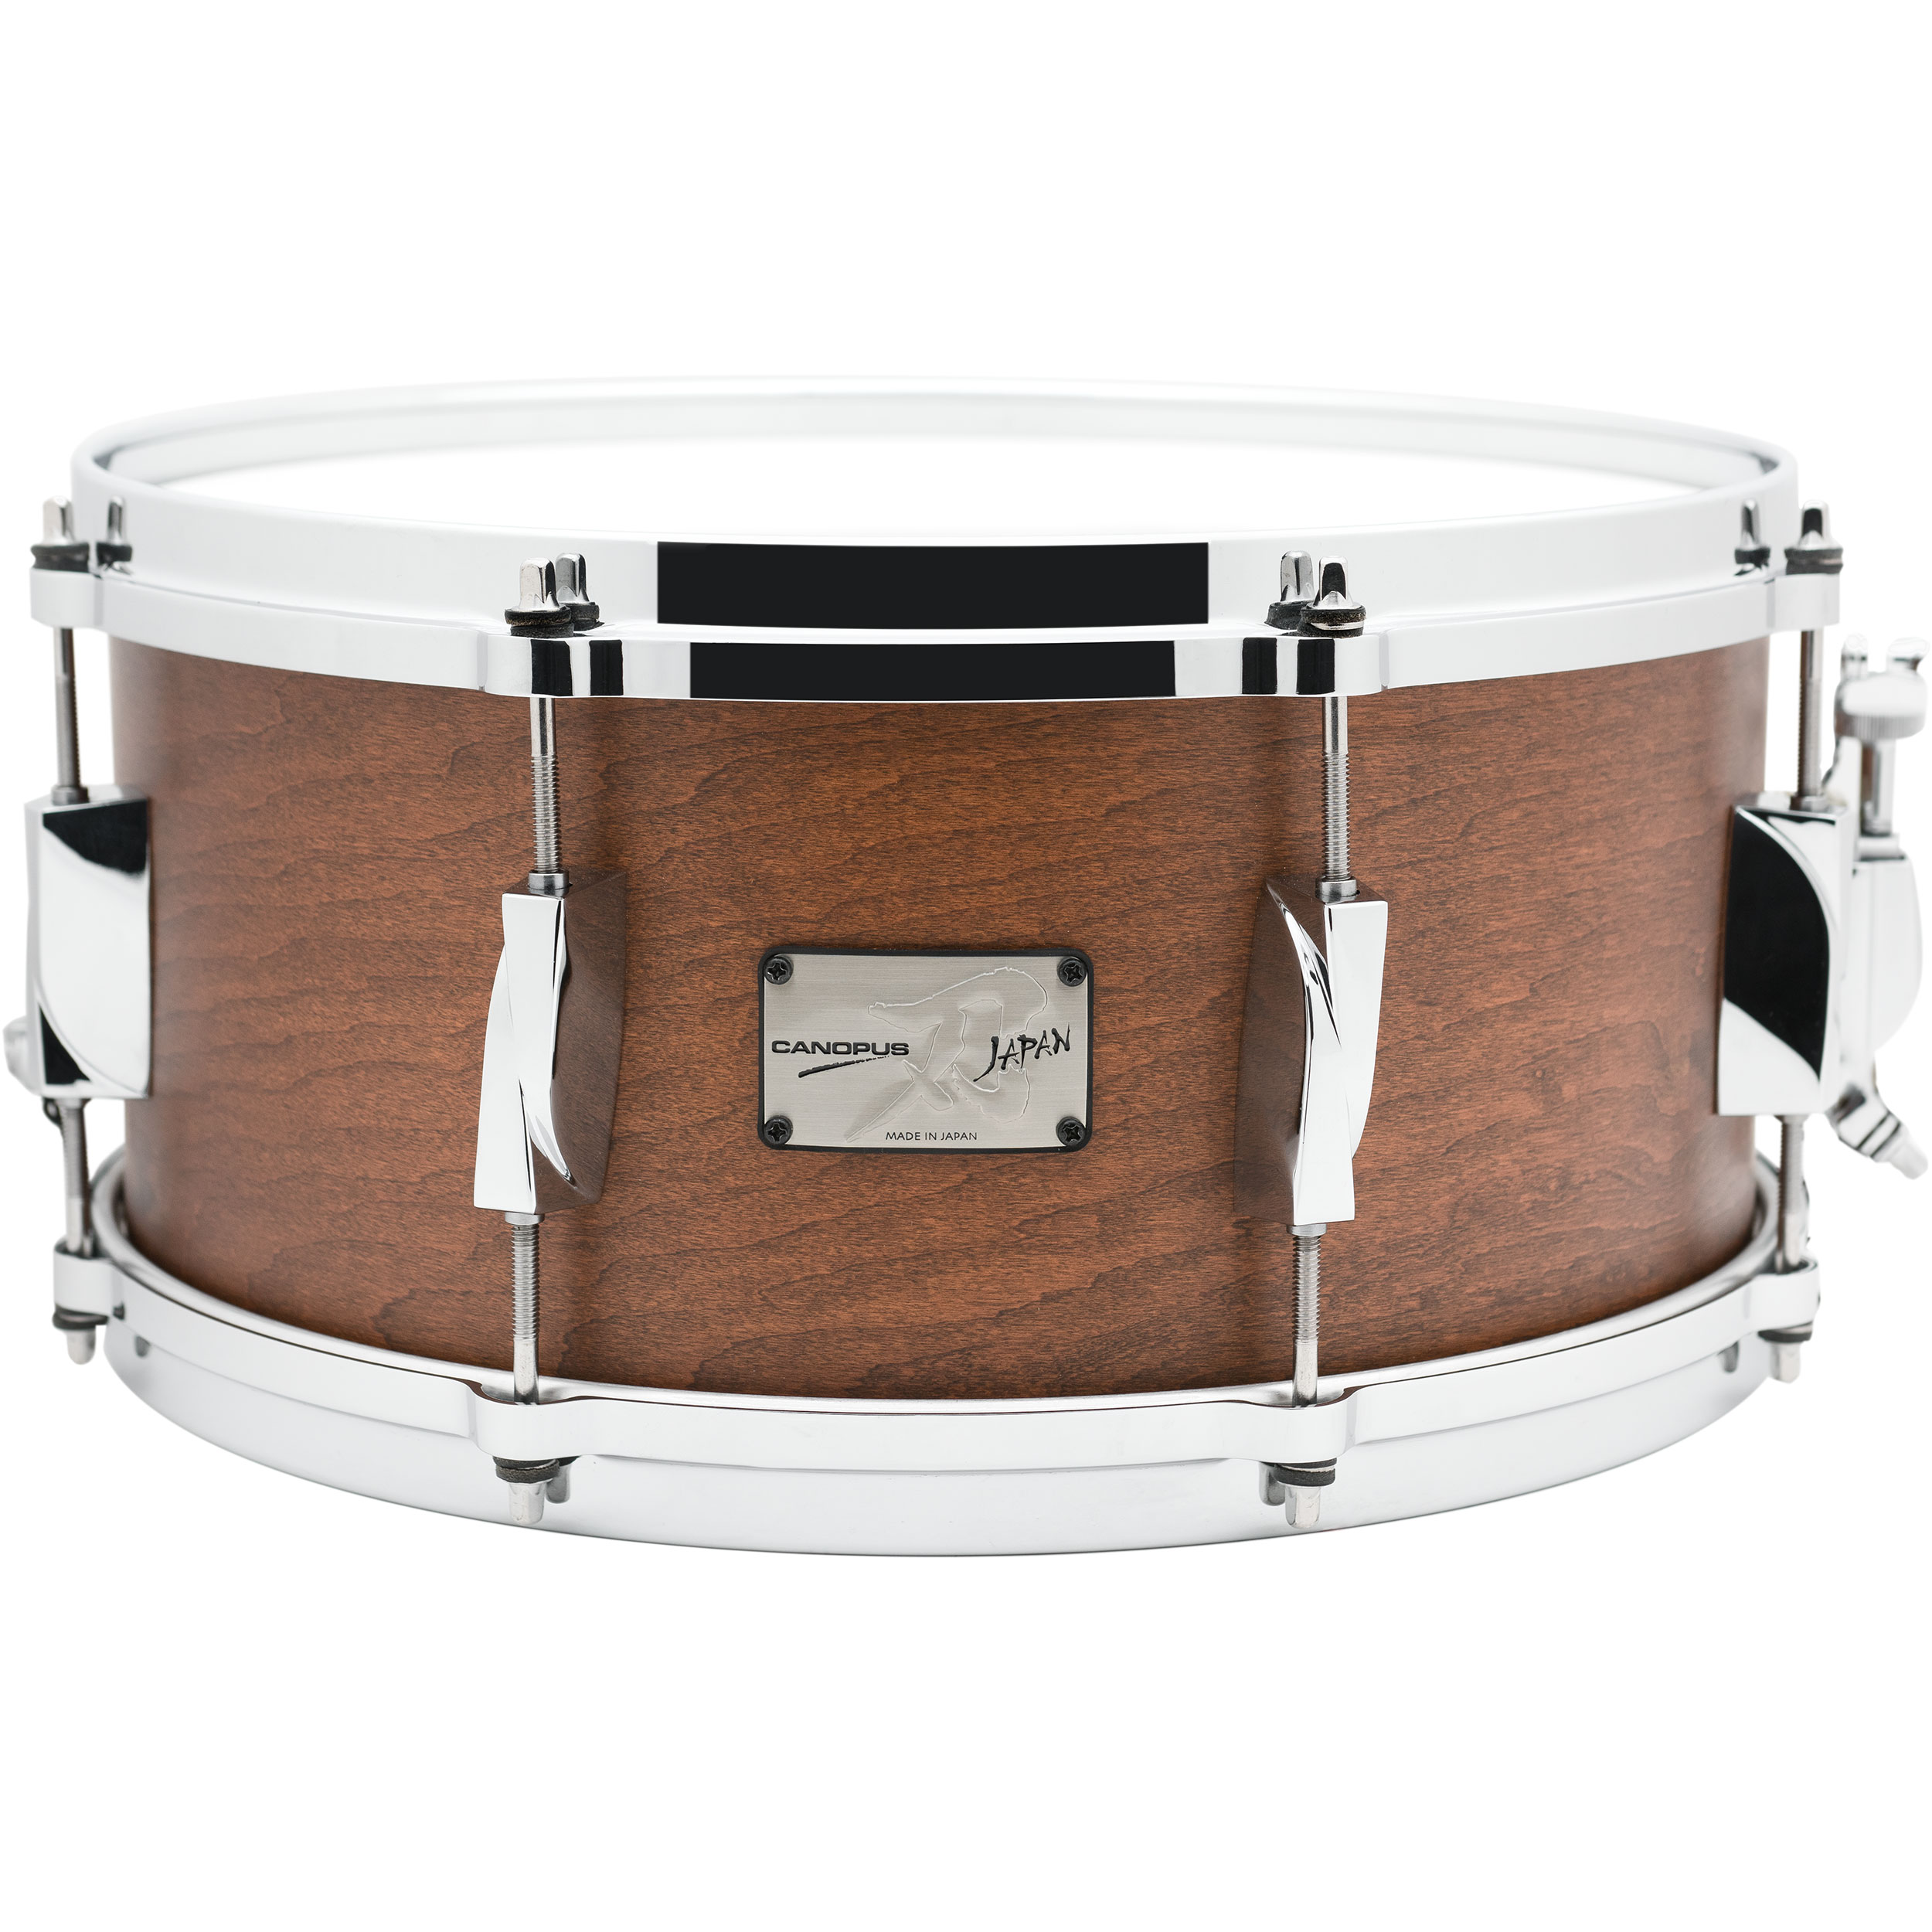 "Canopus 6.5"" x 14"" Yaiba II Maple Snare Drum"